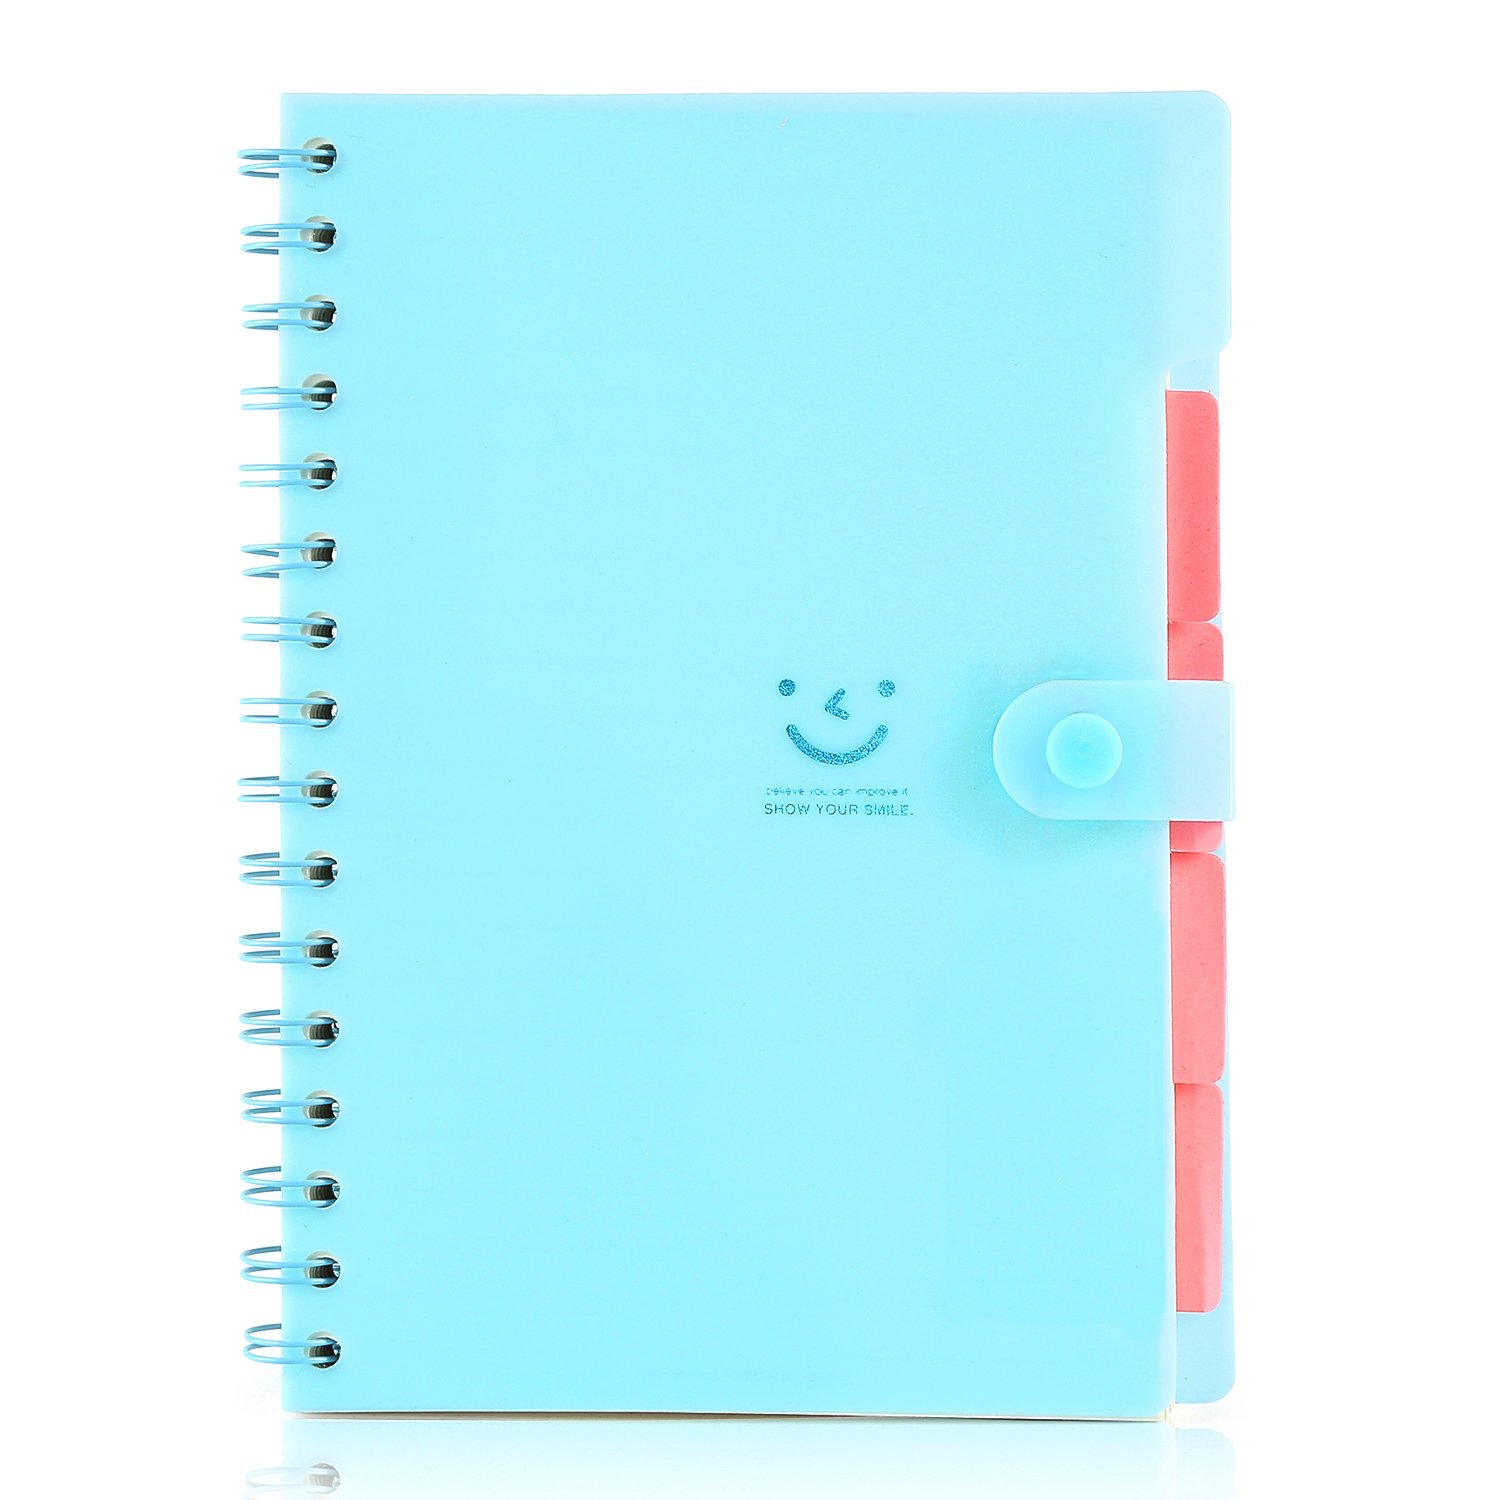 Korean Style Cute Notebook Pp Cover 110 Sheets 7 Colors 21.414.3cm